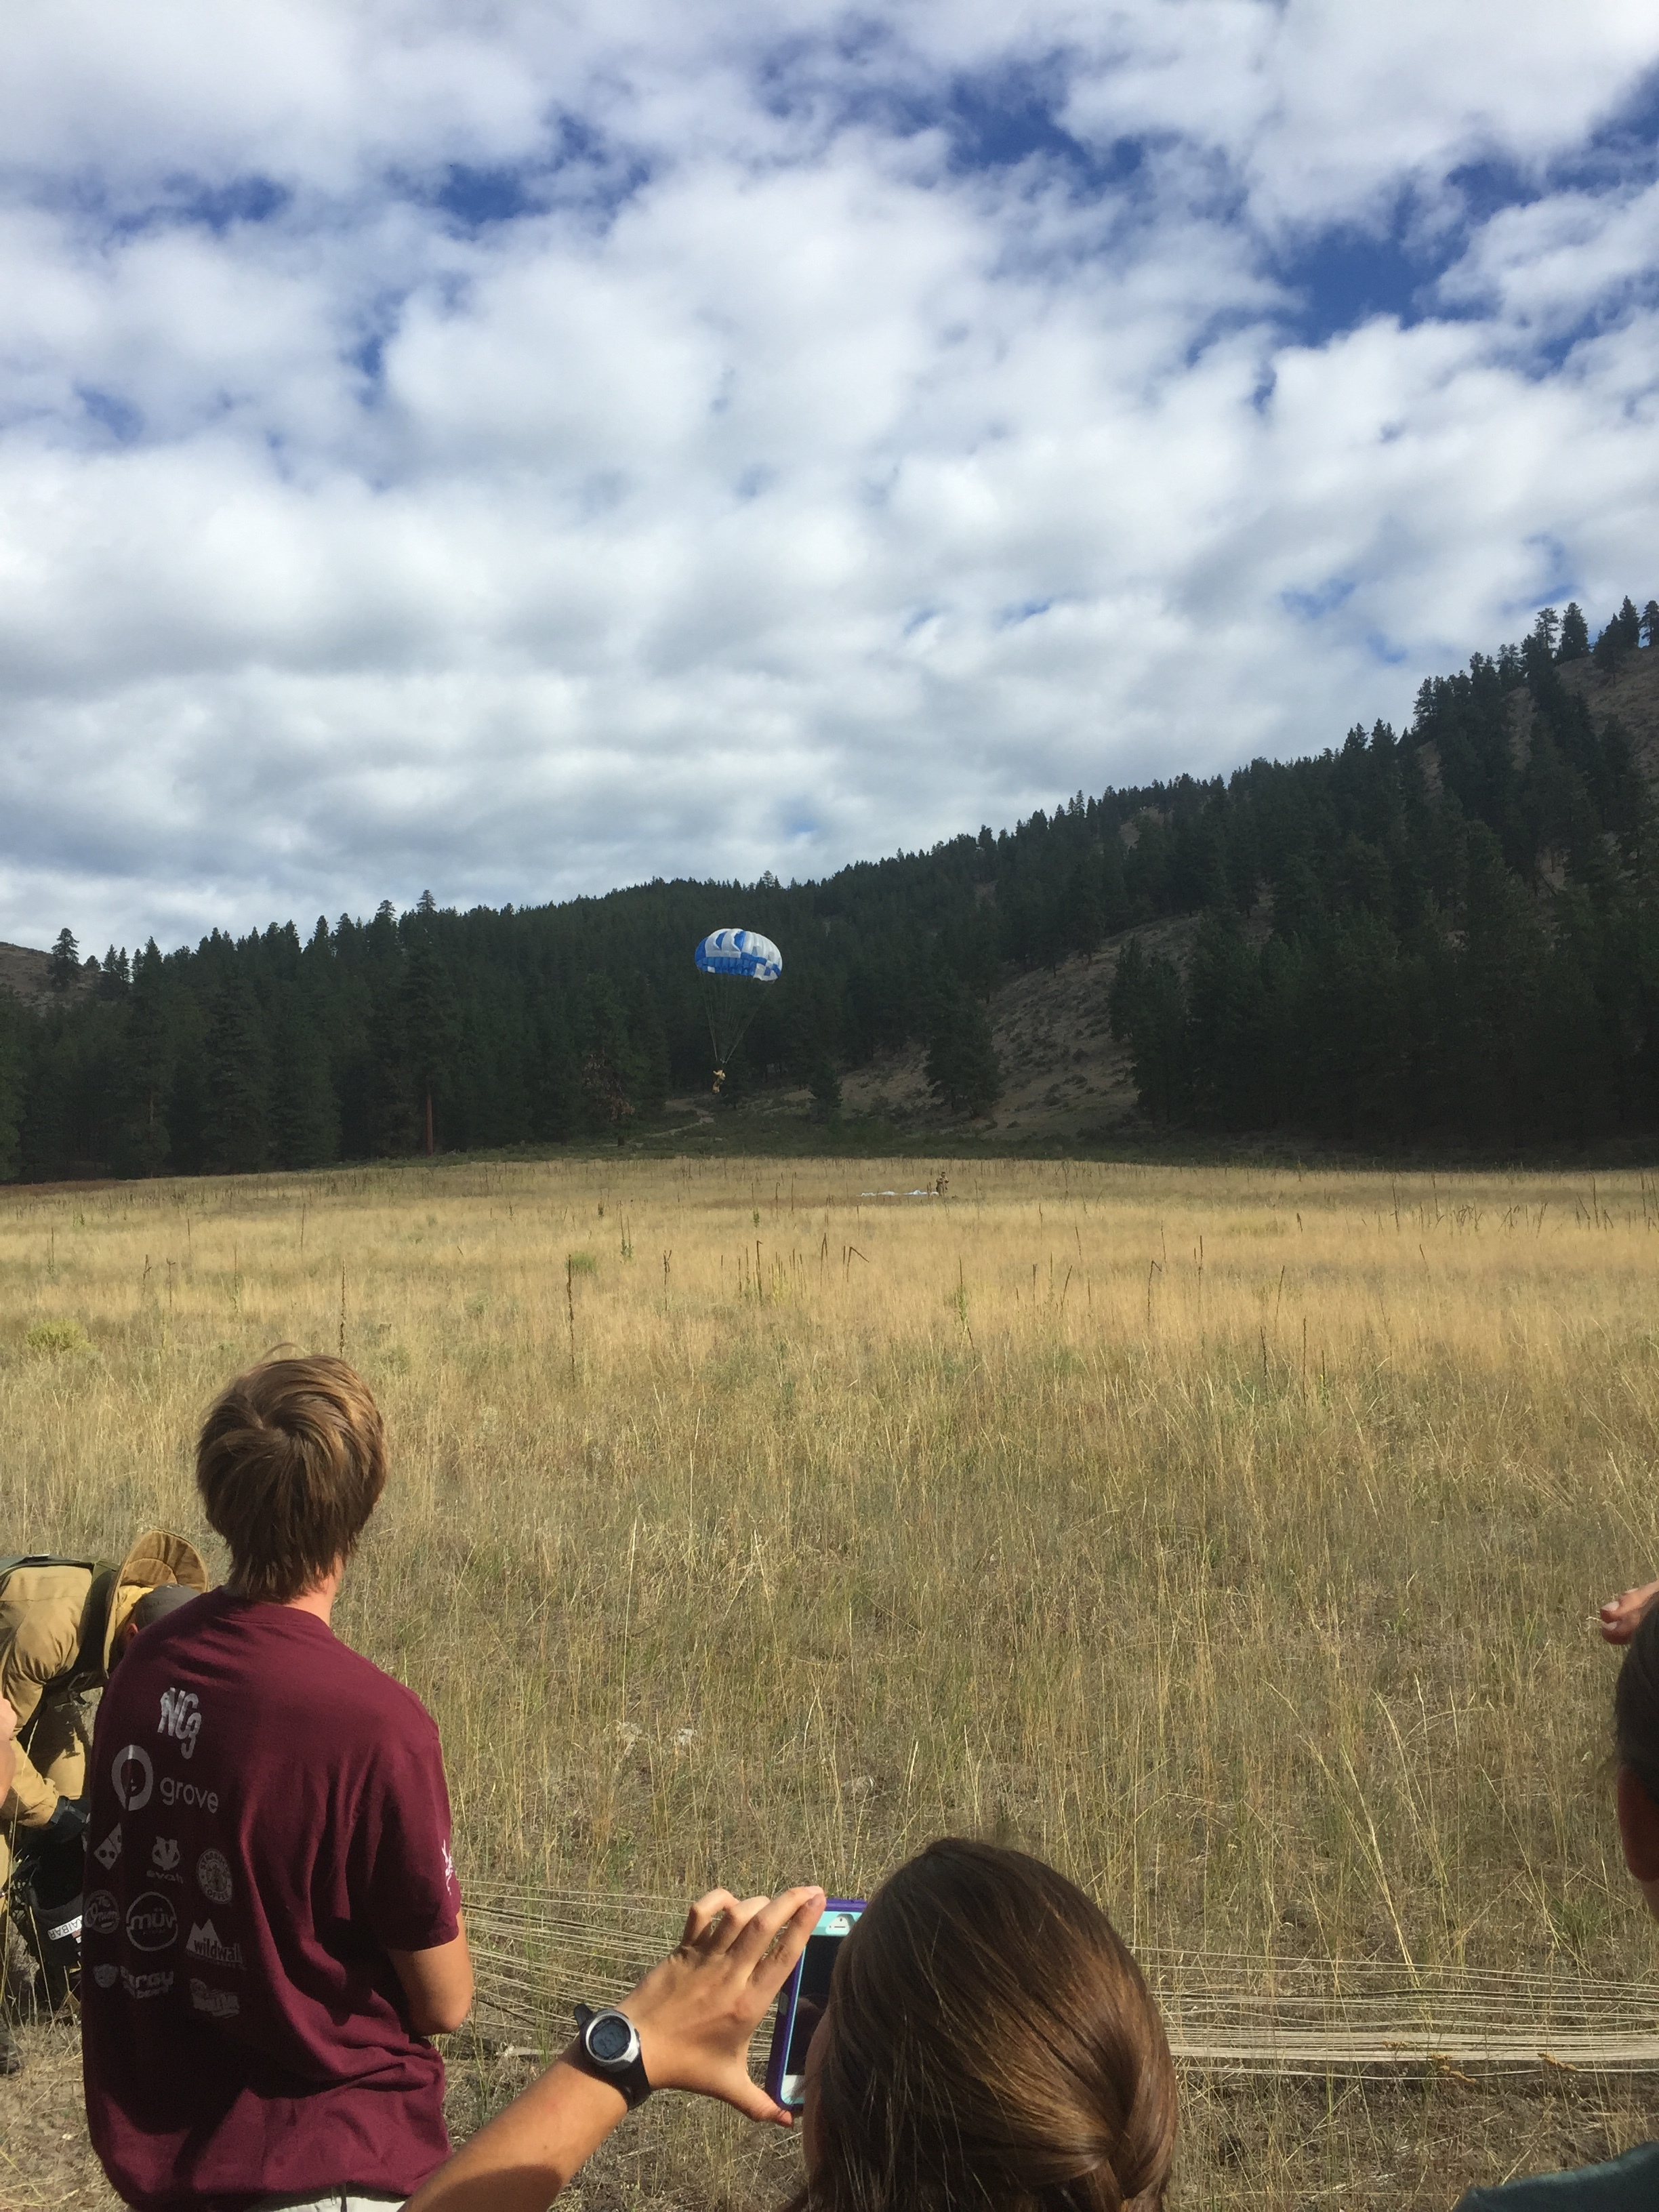 Smokejumpers drop in on our last morning in the Methow